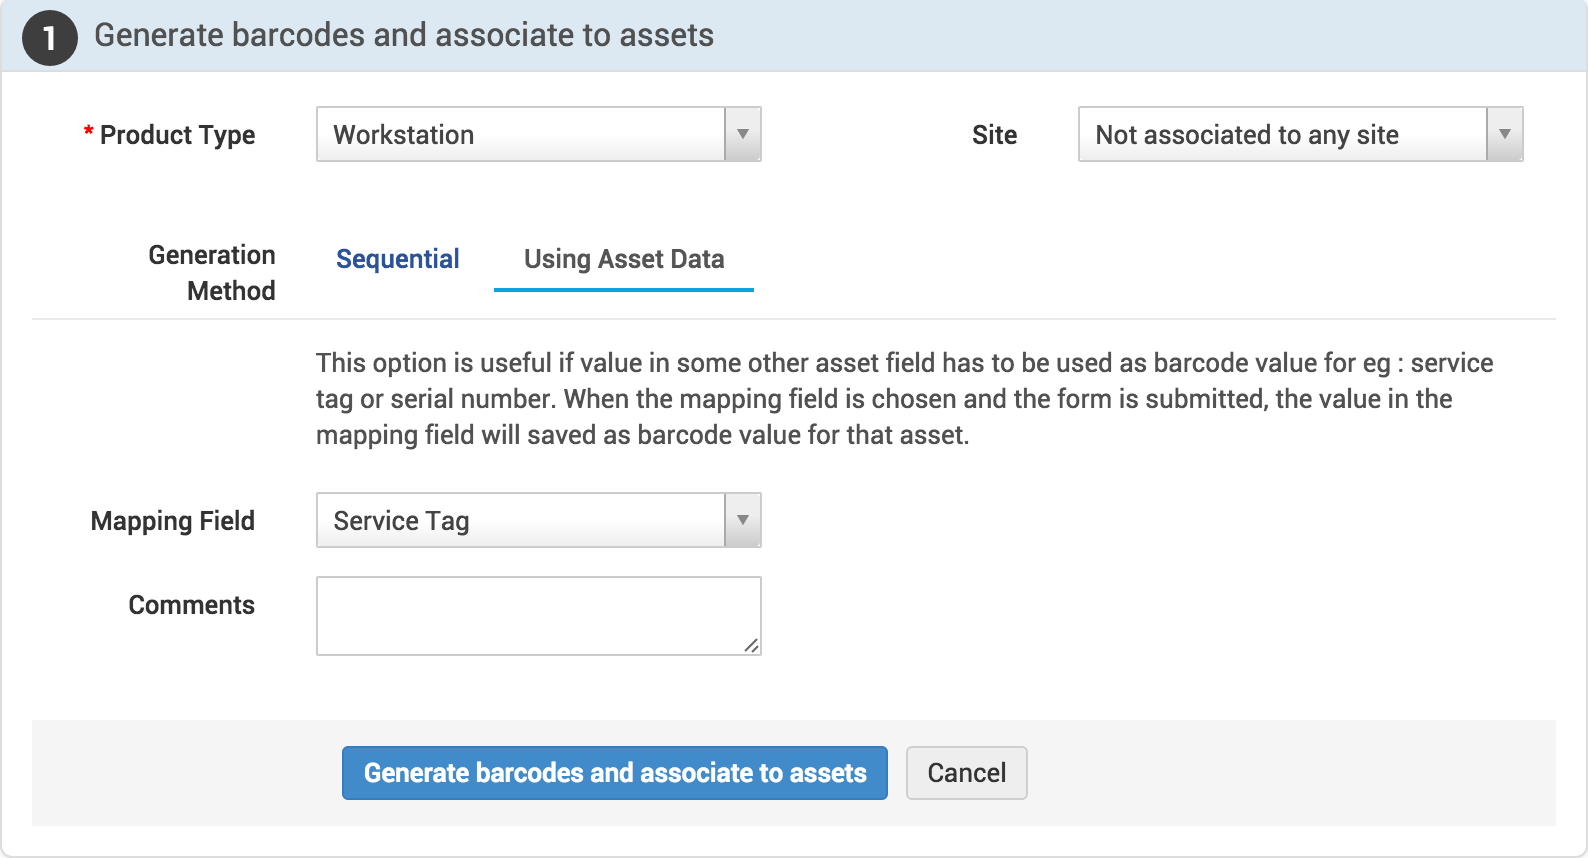 How to create barcodes for existing assets | Barcode generation